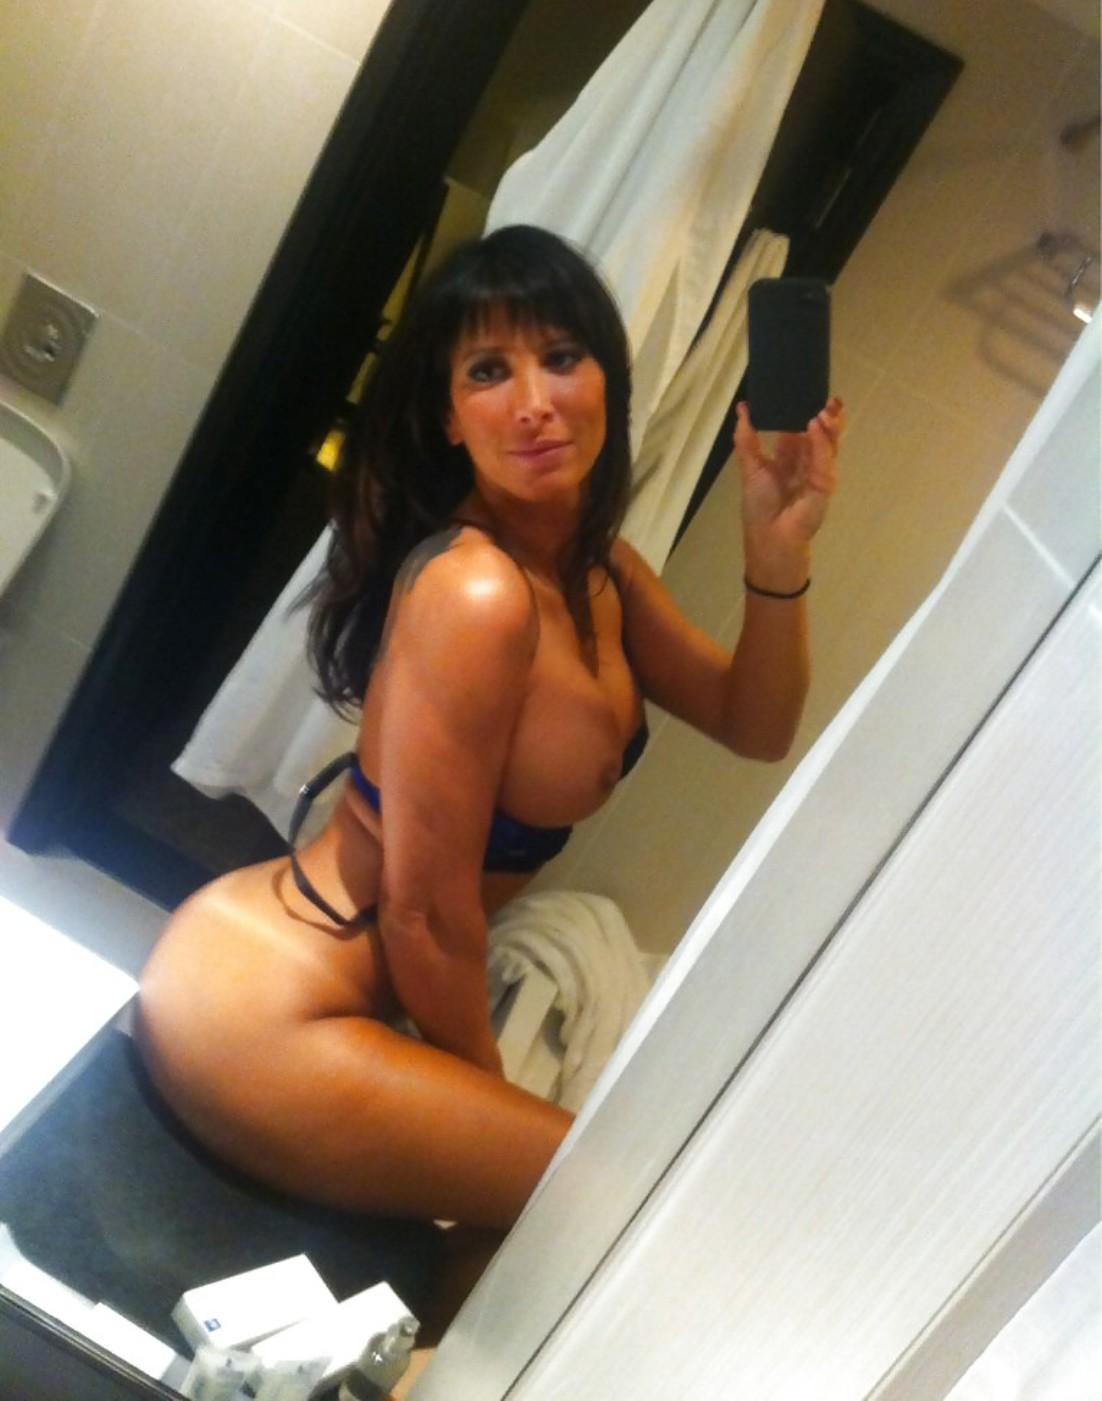 Big titted MILF flashing her big breasts and athletic figure in self shot. Pouty brunette beauty bares her great big tits for nude selfie